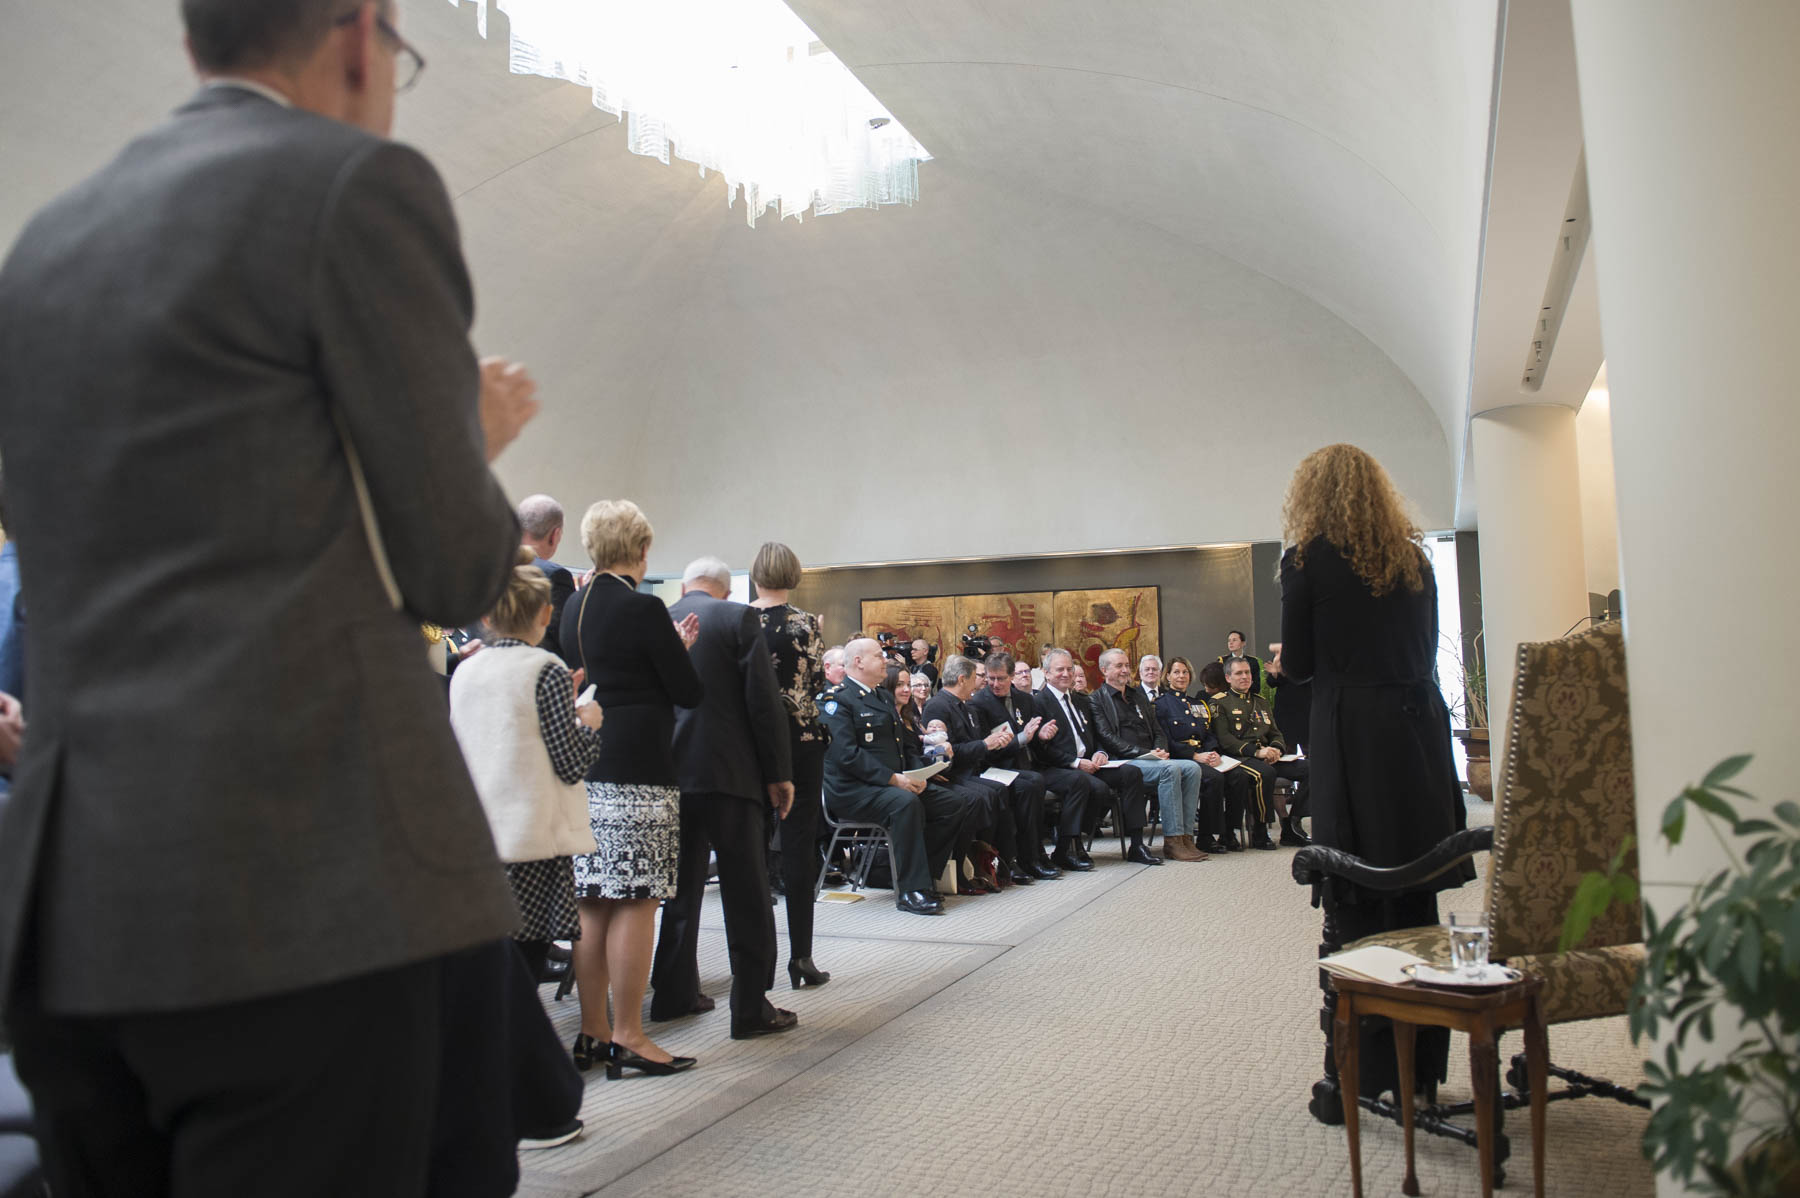 The ceremony took place in the Ballroom, at the Residence of the Governor General at the Citadelle of Québec.